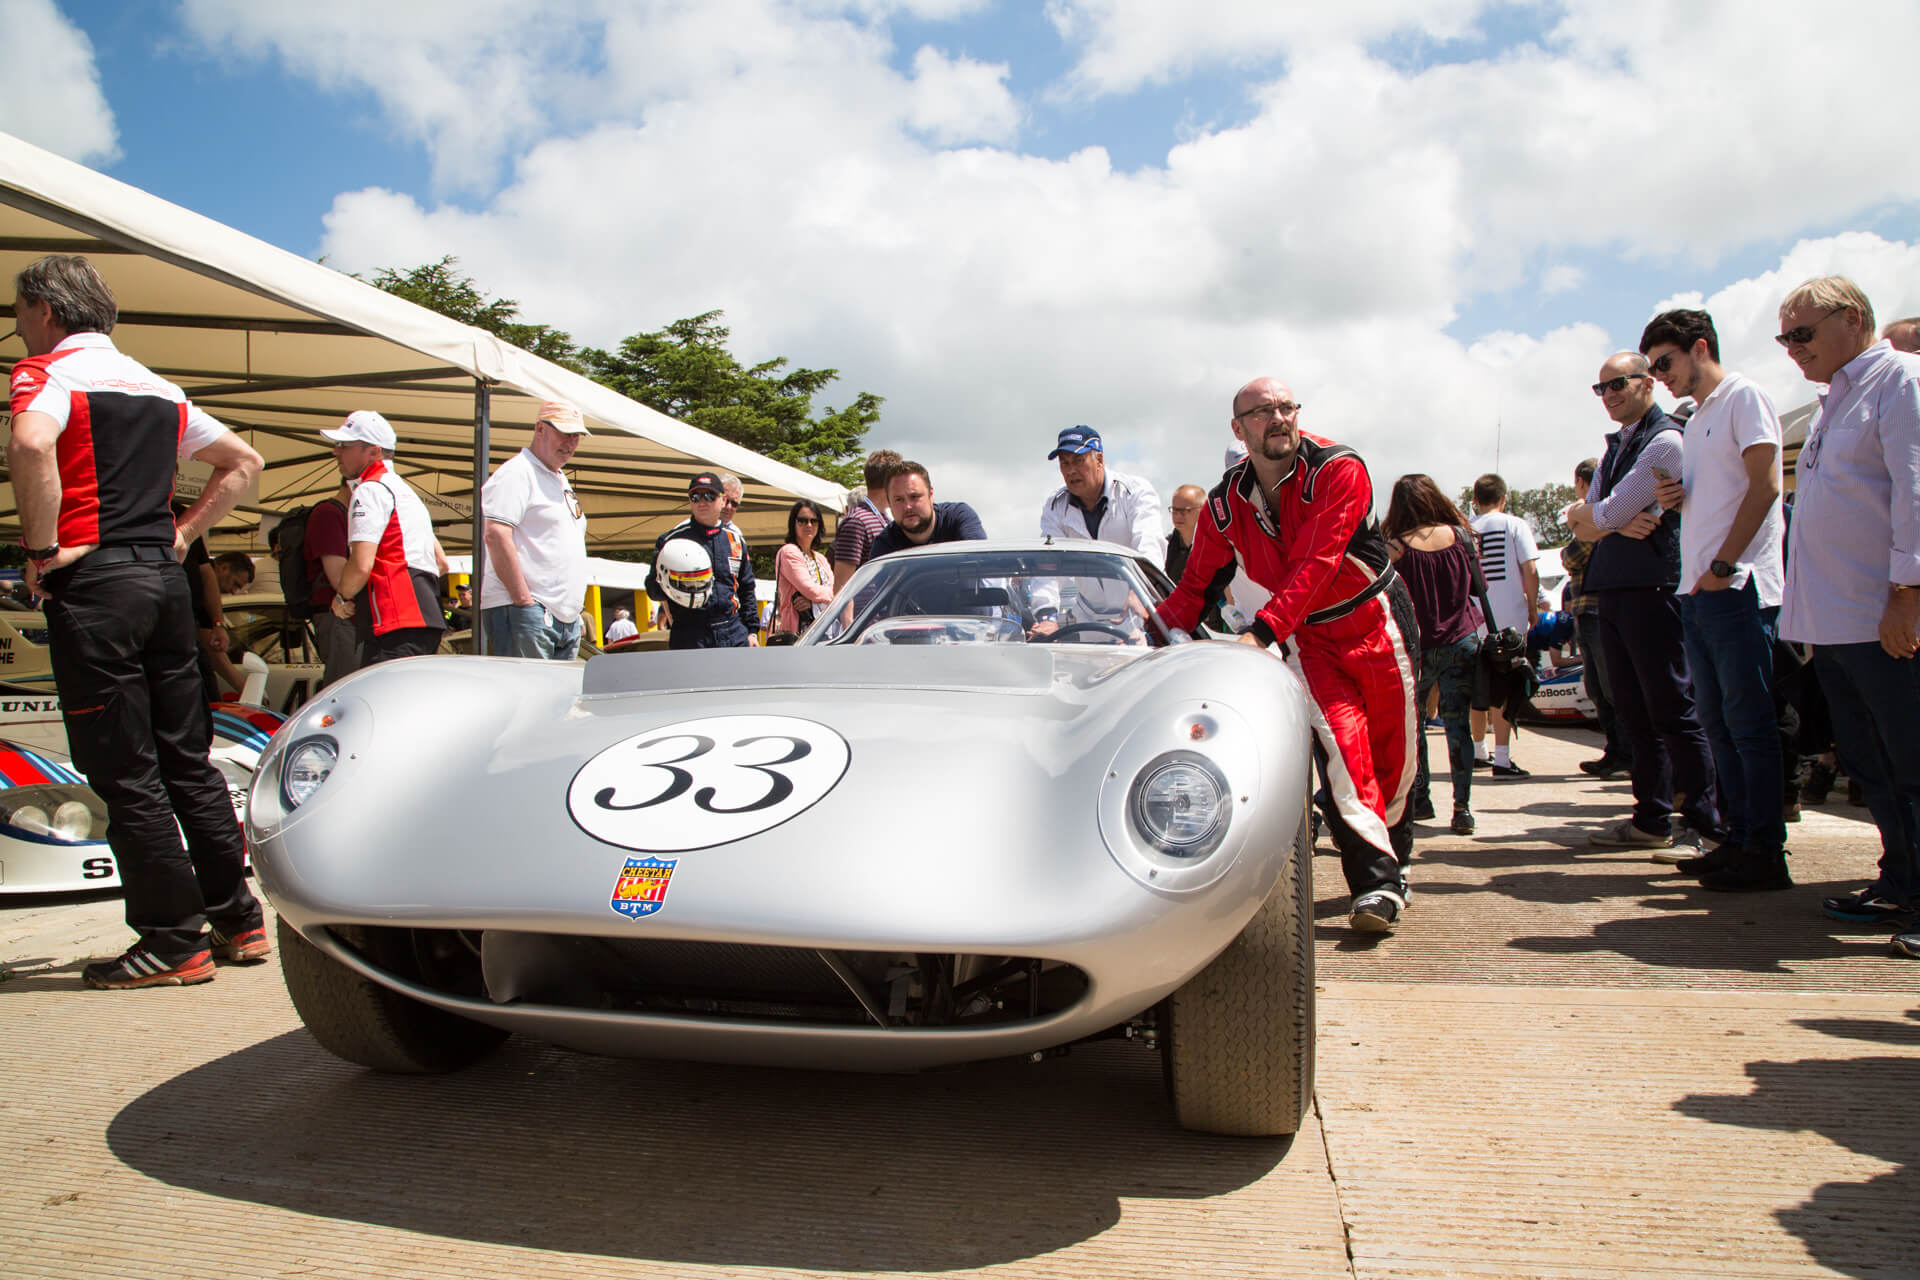 Goodwood, Festival of Speed, Car, Racing, Event, Supercar, Hypercar, Pits, Paddock, Film, Photography, Agency, WeAreShuffle, Goodwood Festival of Speed